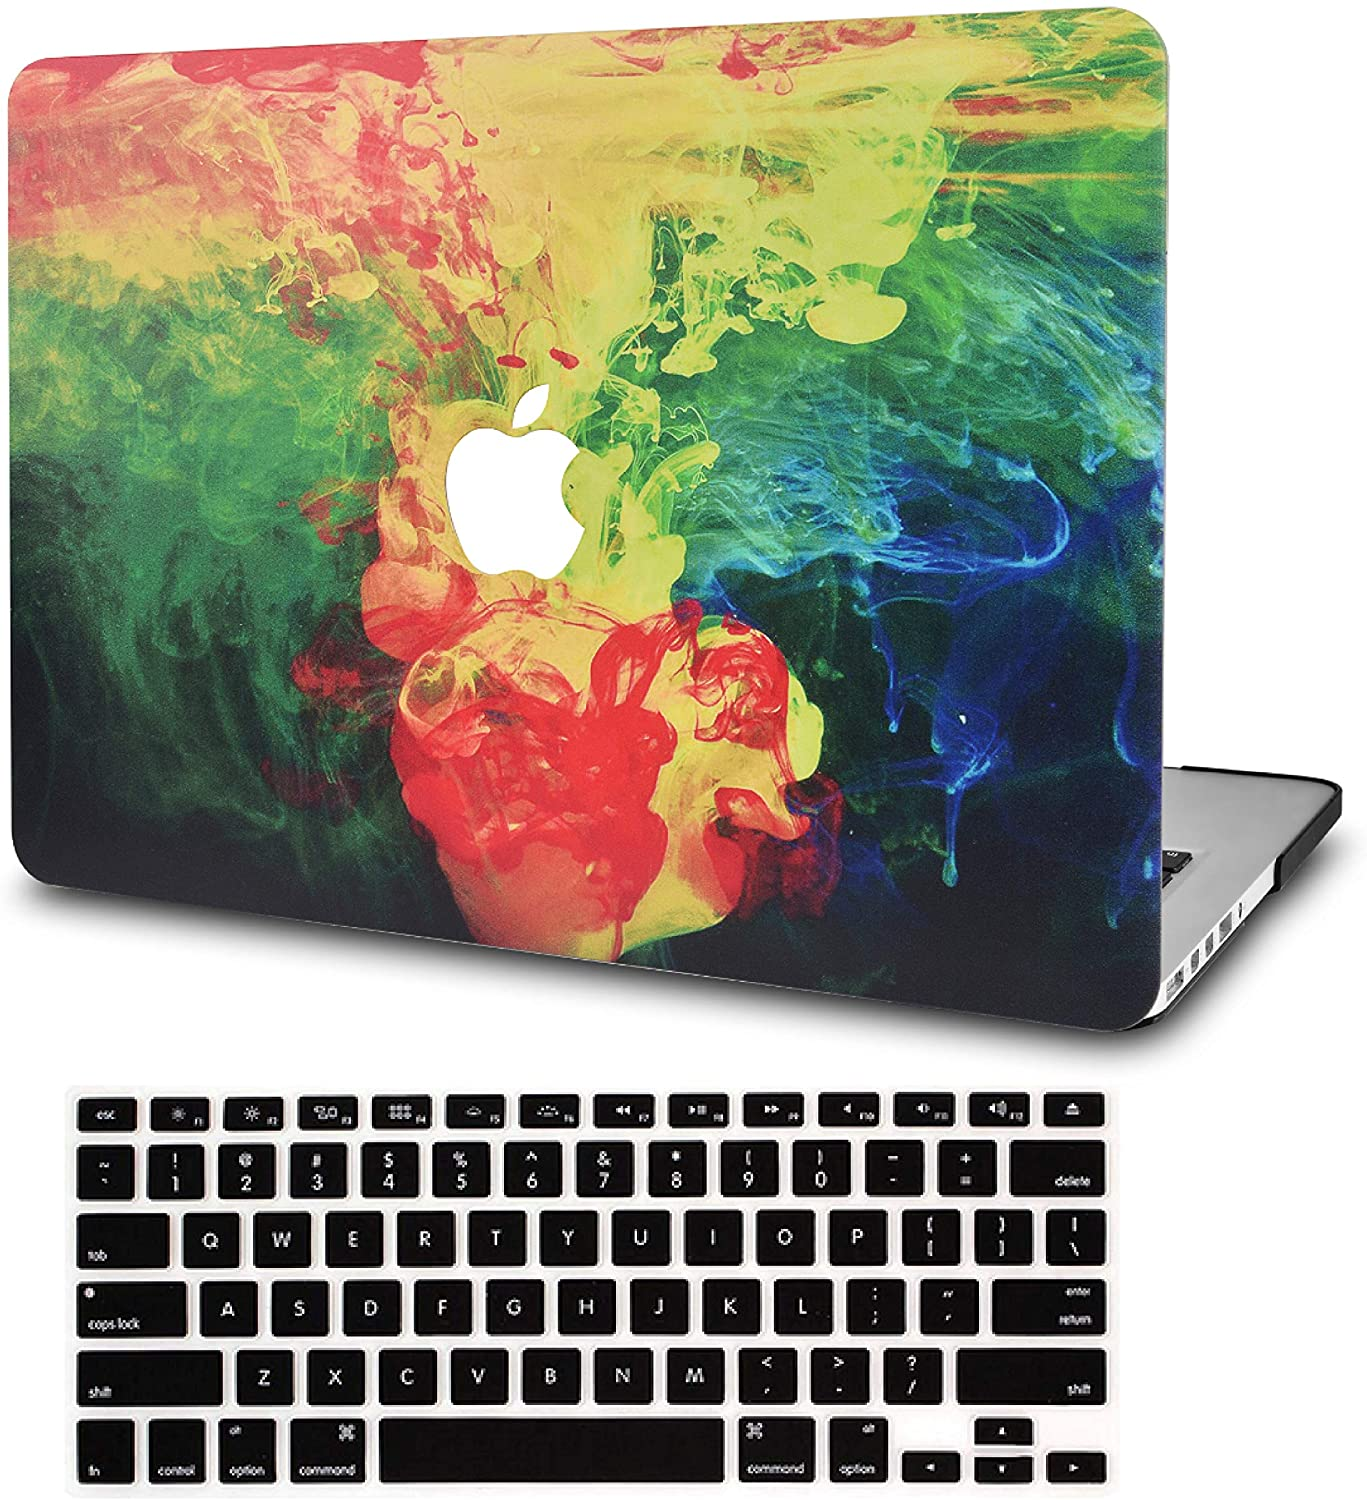 KECC Laptop Case for MacBook Pro 13 (2020/2019/2018/2017/2016) w/Keyboard Cover Plastic Hard Shell A2159/A1989/A1706/A1708 Touch Bar 2 in 1 Bundle (Ink Diffusion)